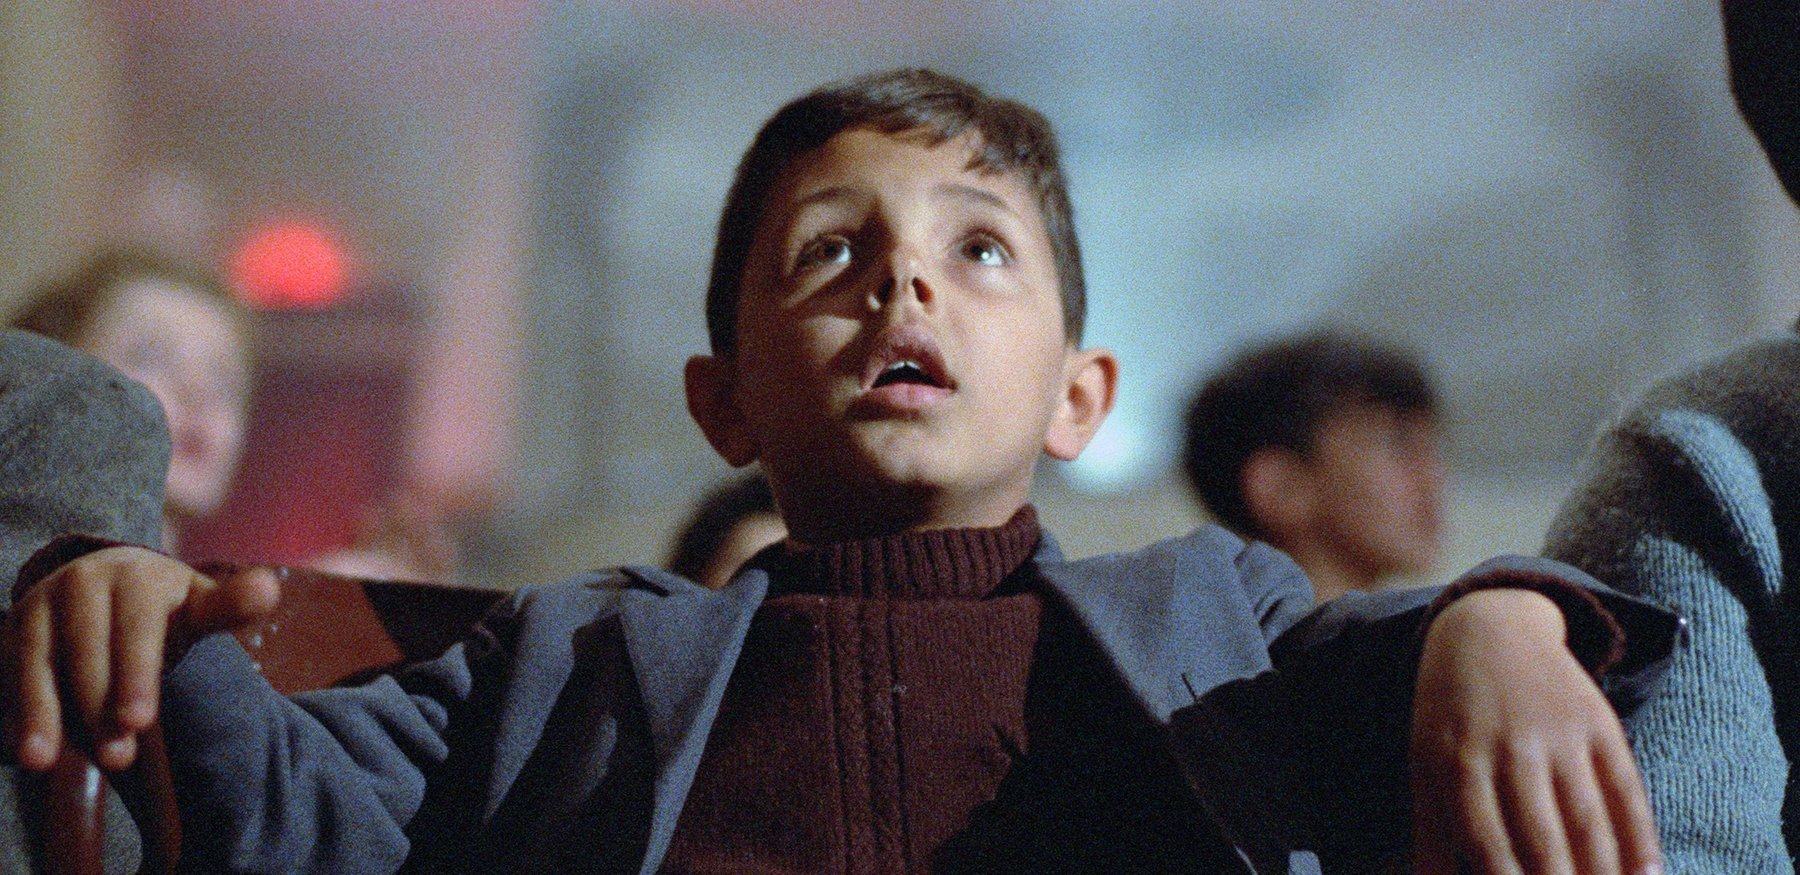 Cinema Paradiso: A film dedicated to films